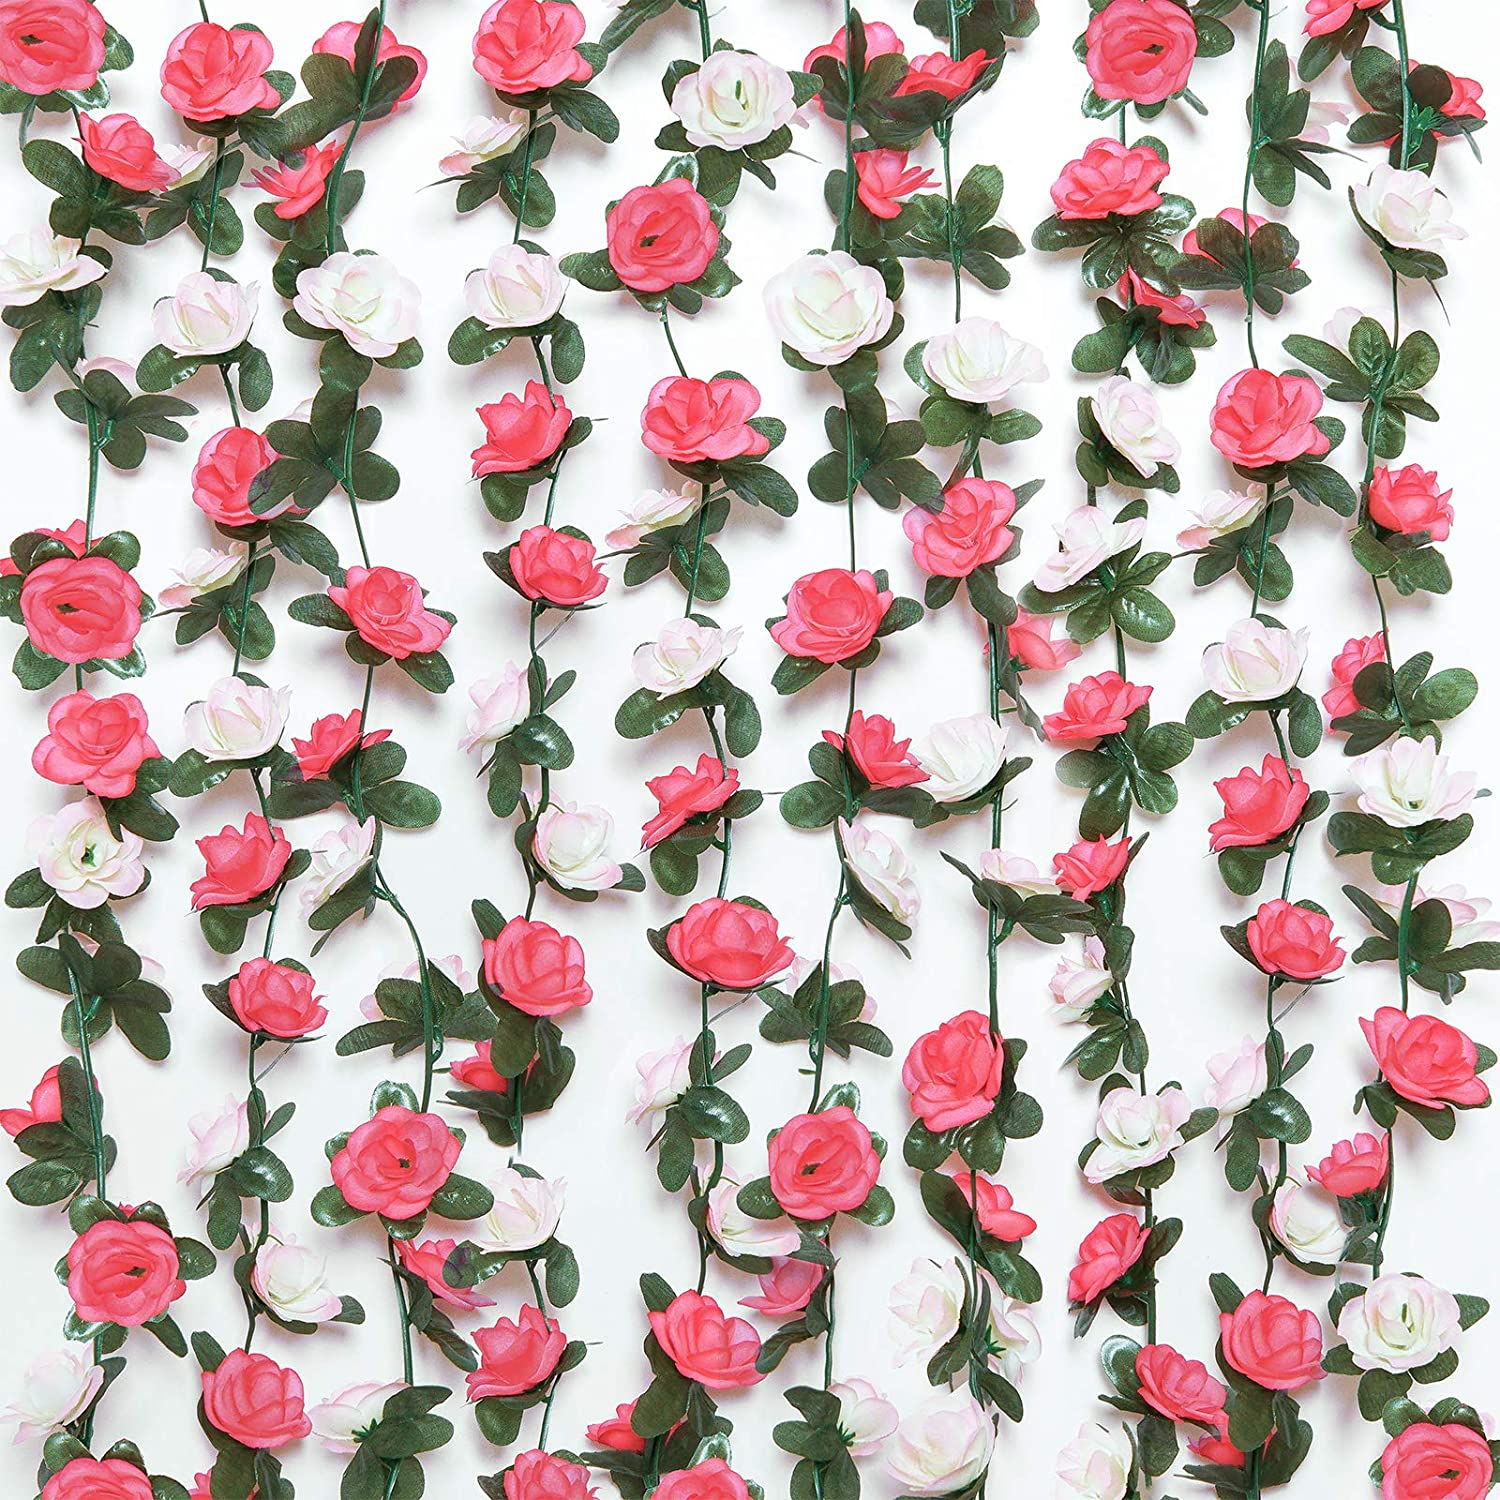 COCOBOO 6 Pack Fake Rose Vines Garland for Room Decor Artificial Rose Flower Hanging Rose Ivy Home Hotel Office Wedding Party Garden Craft Art Décor (Light Pink, Red)